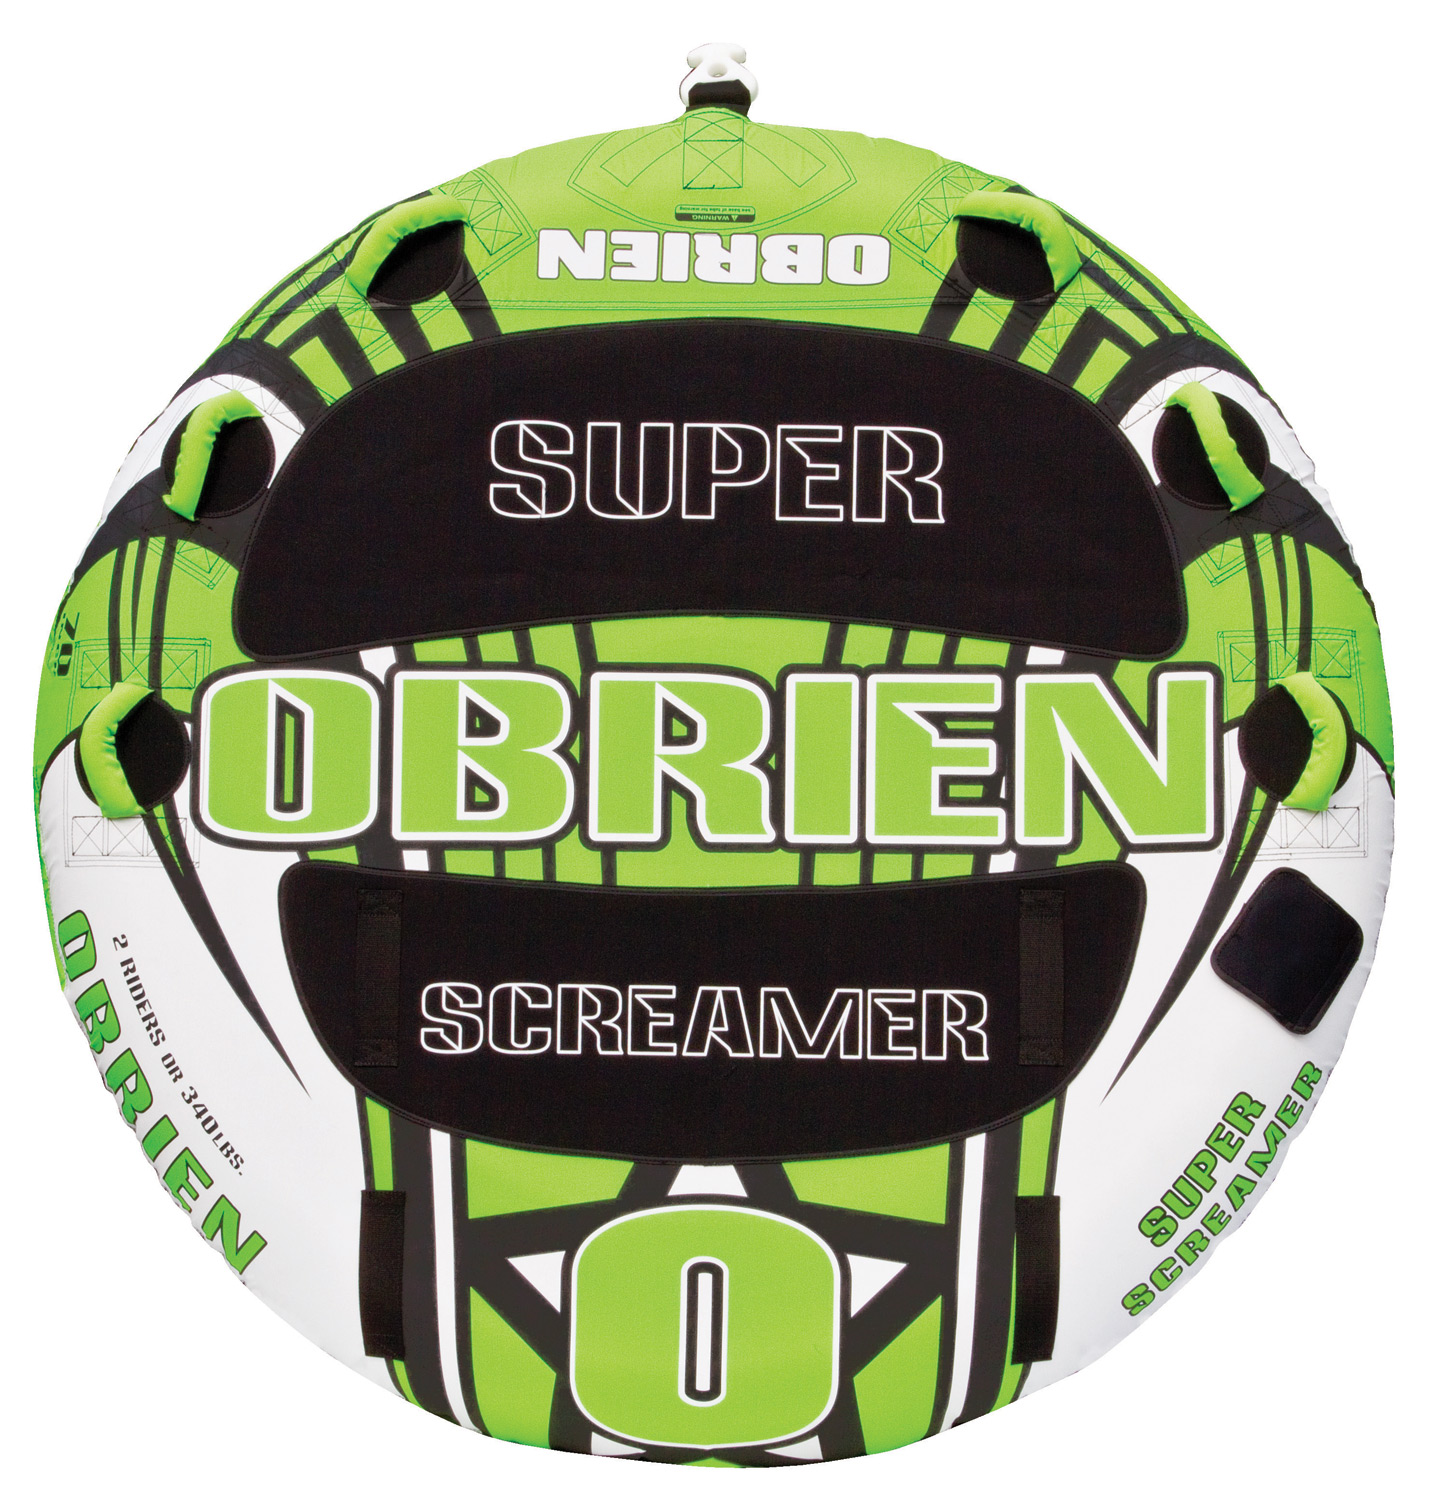 "Key Features of the O'Brien Super Screamer Tube: 70"" Up To 2 Riders 26 Gauge Pvc Fully Covered 420 D Nylon 6 Handles W/ Eva Knuckle Guards 2 Eva Pads 1 Quick Connect Hook 1 Boston Valve One Year Limited Warranty - $135.95"